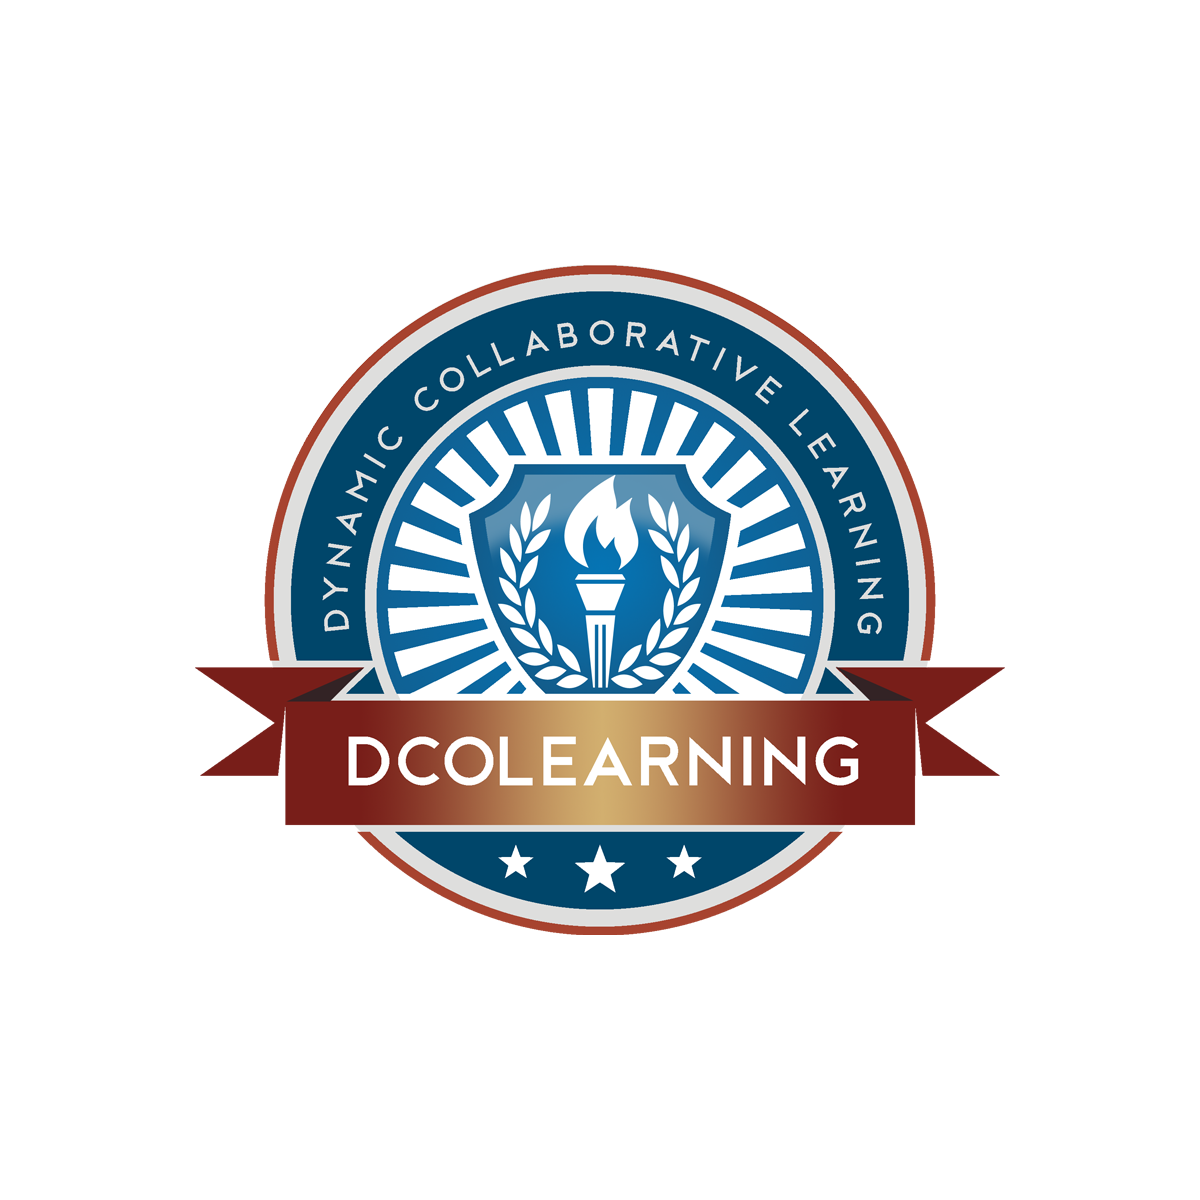 Dcolearning - Accoladia Group